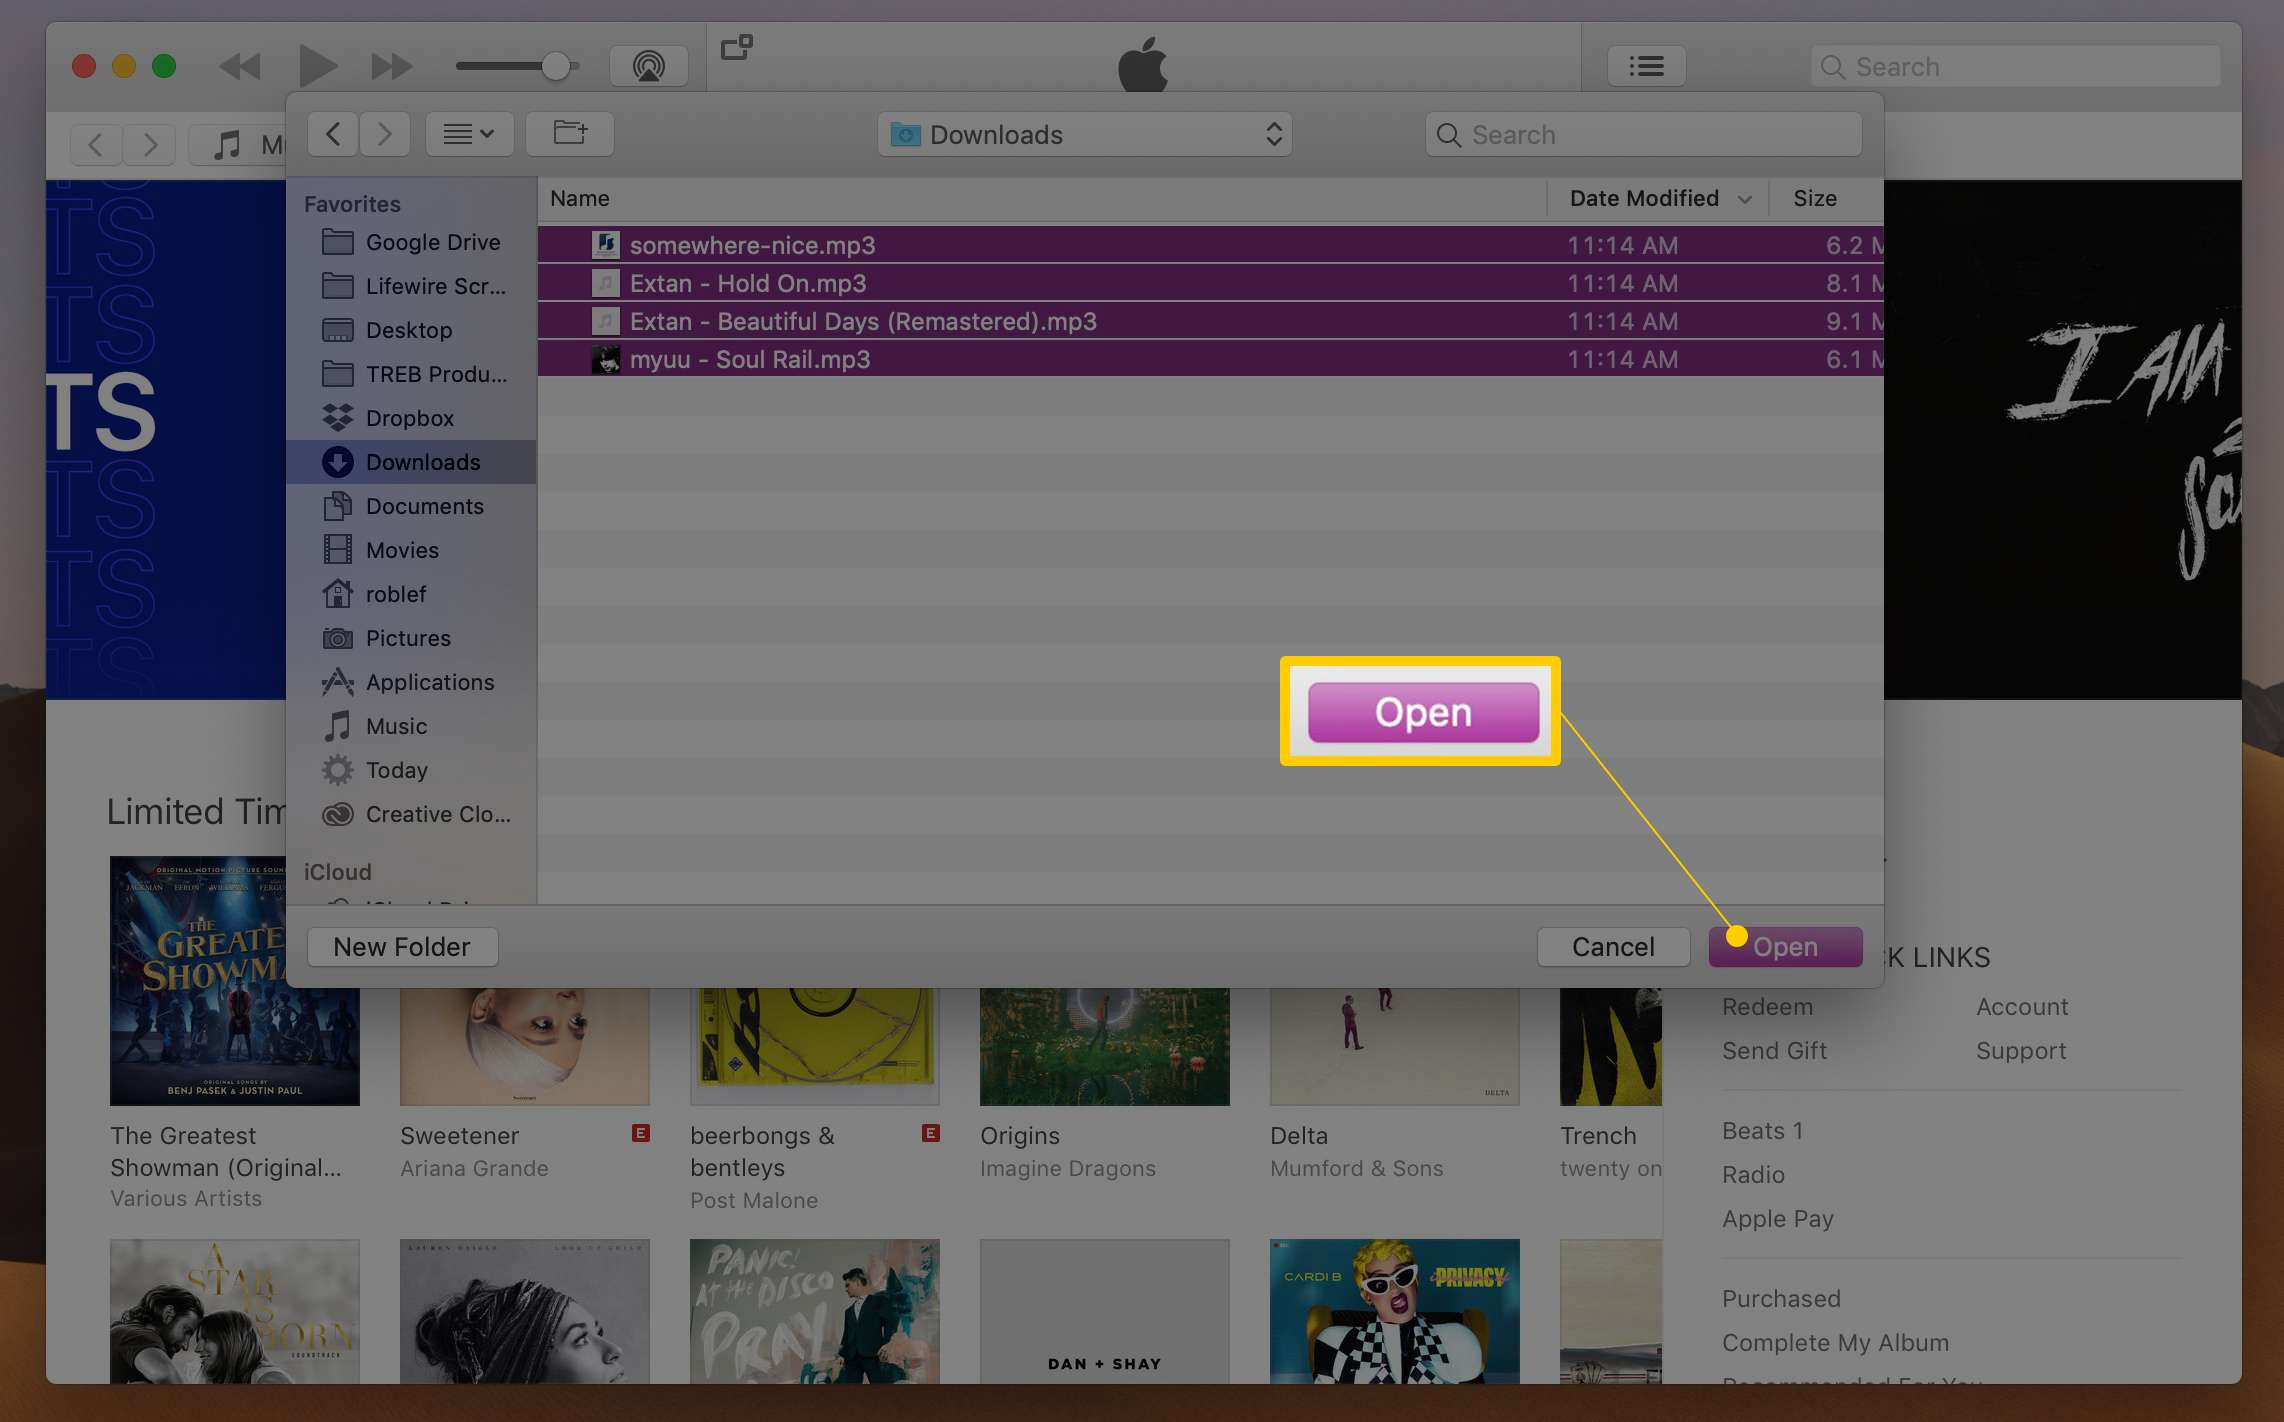 How to Import Downloaded Music to iTunes